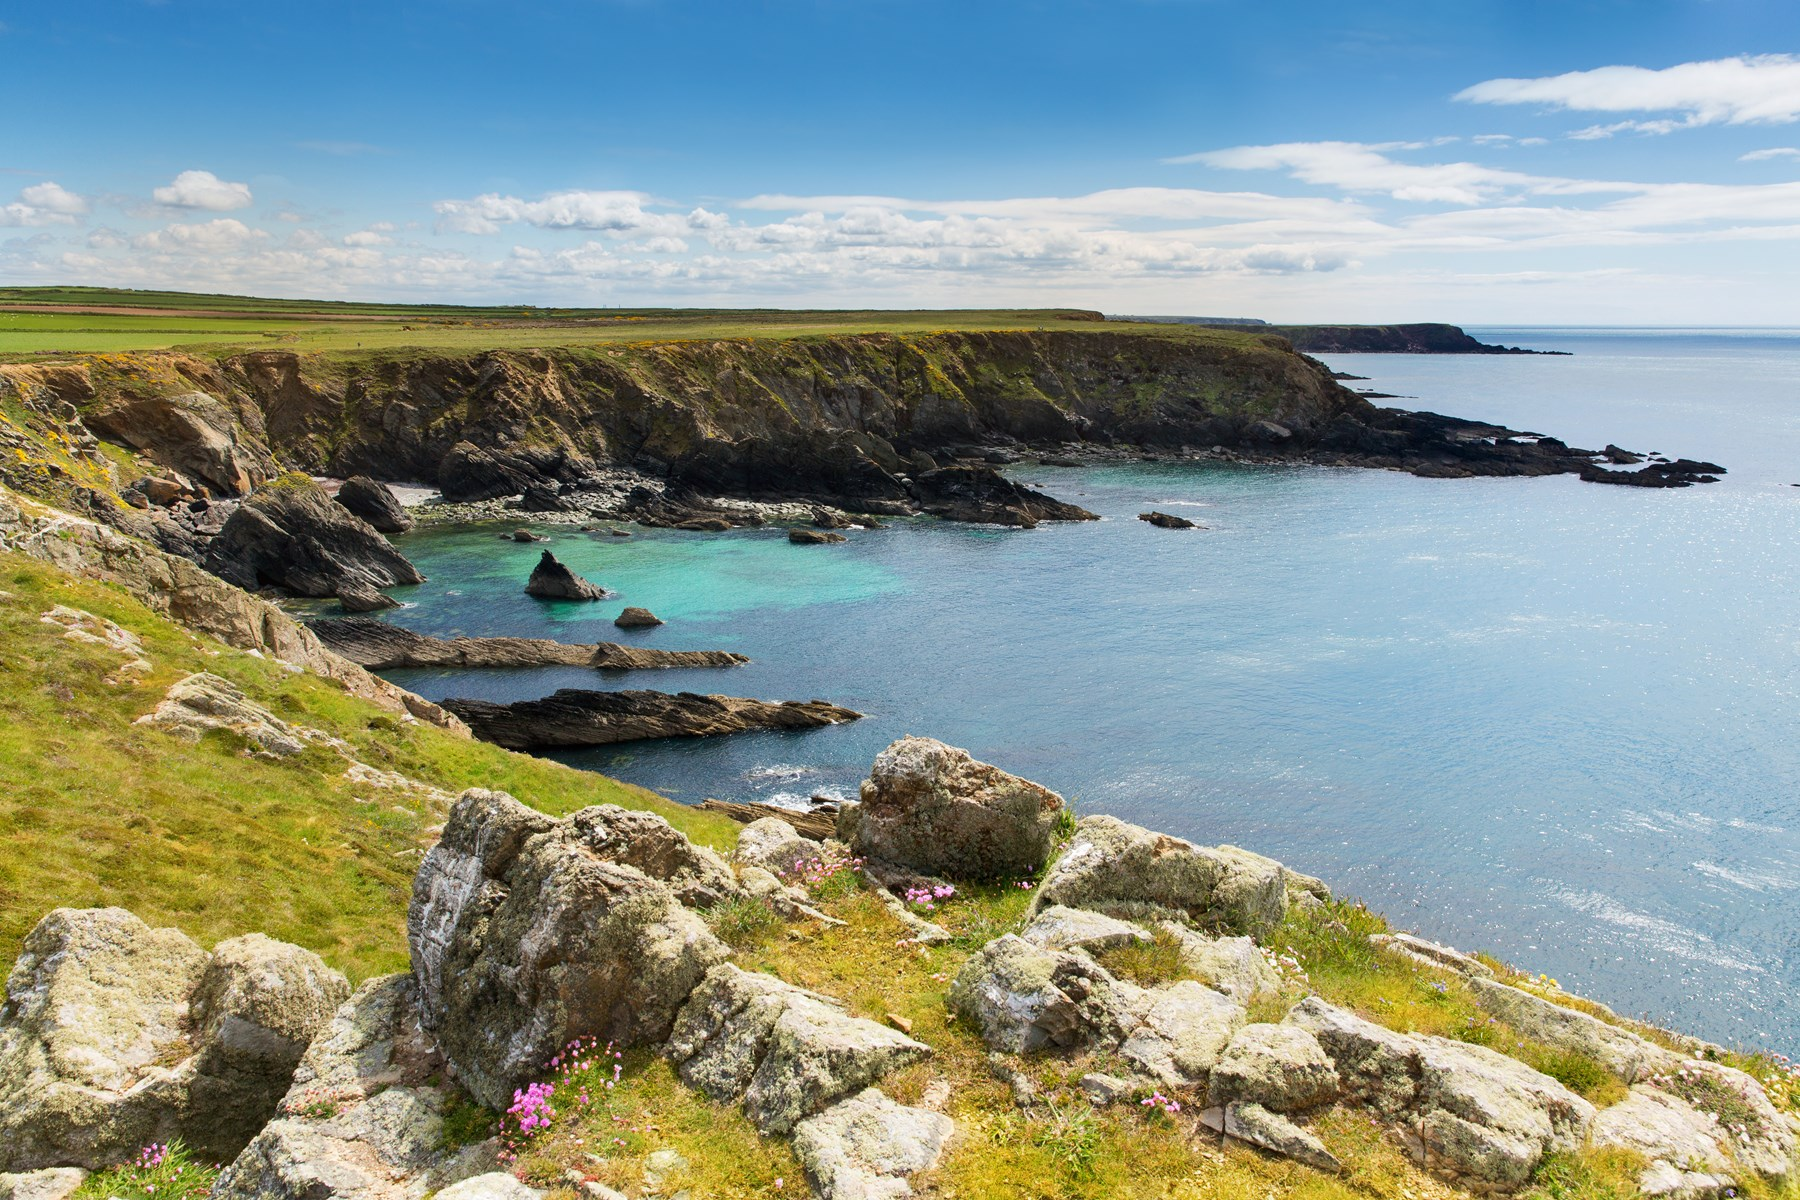 Spring Bank Holiday Cottage Breaks in Pembrokeshire, Wales